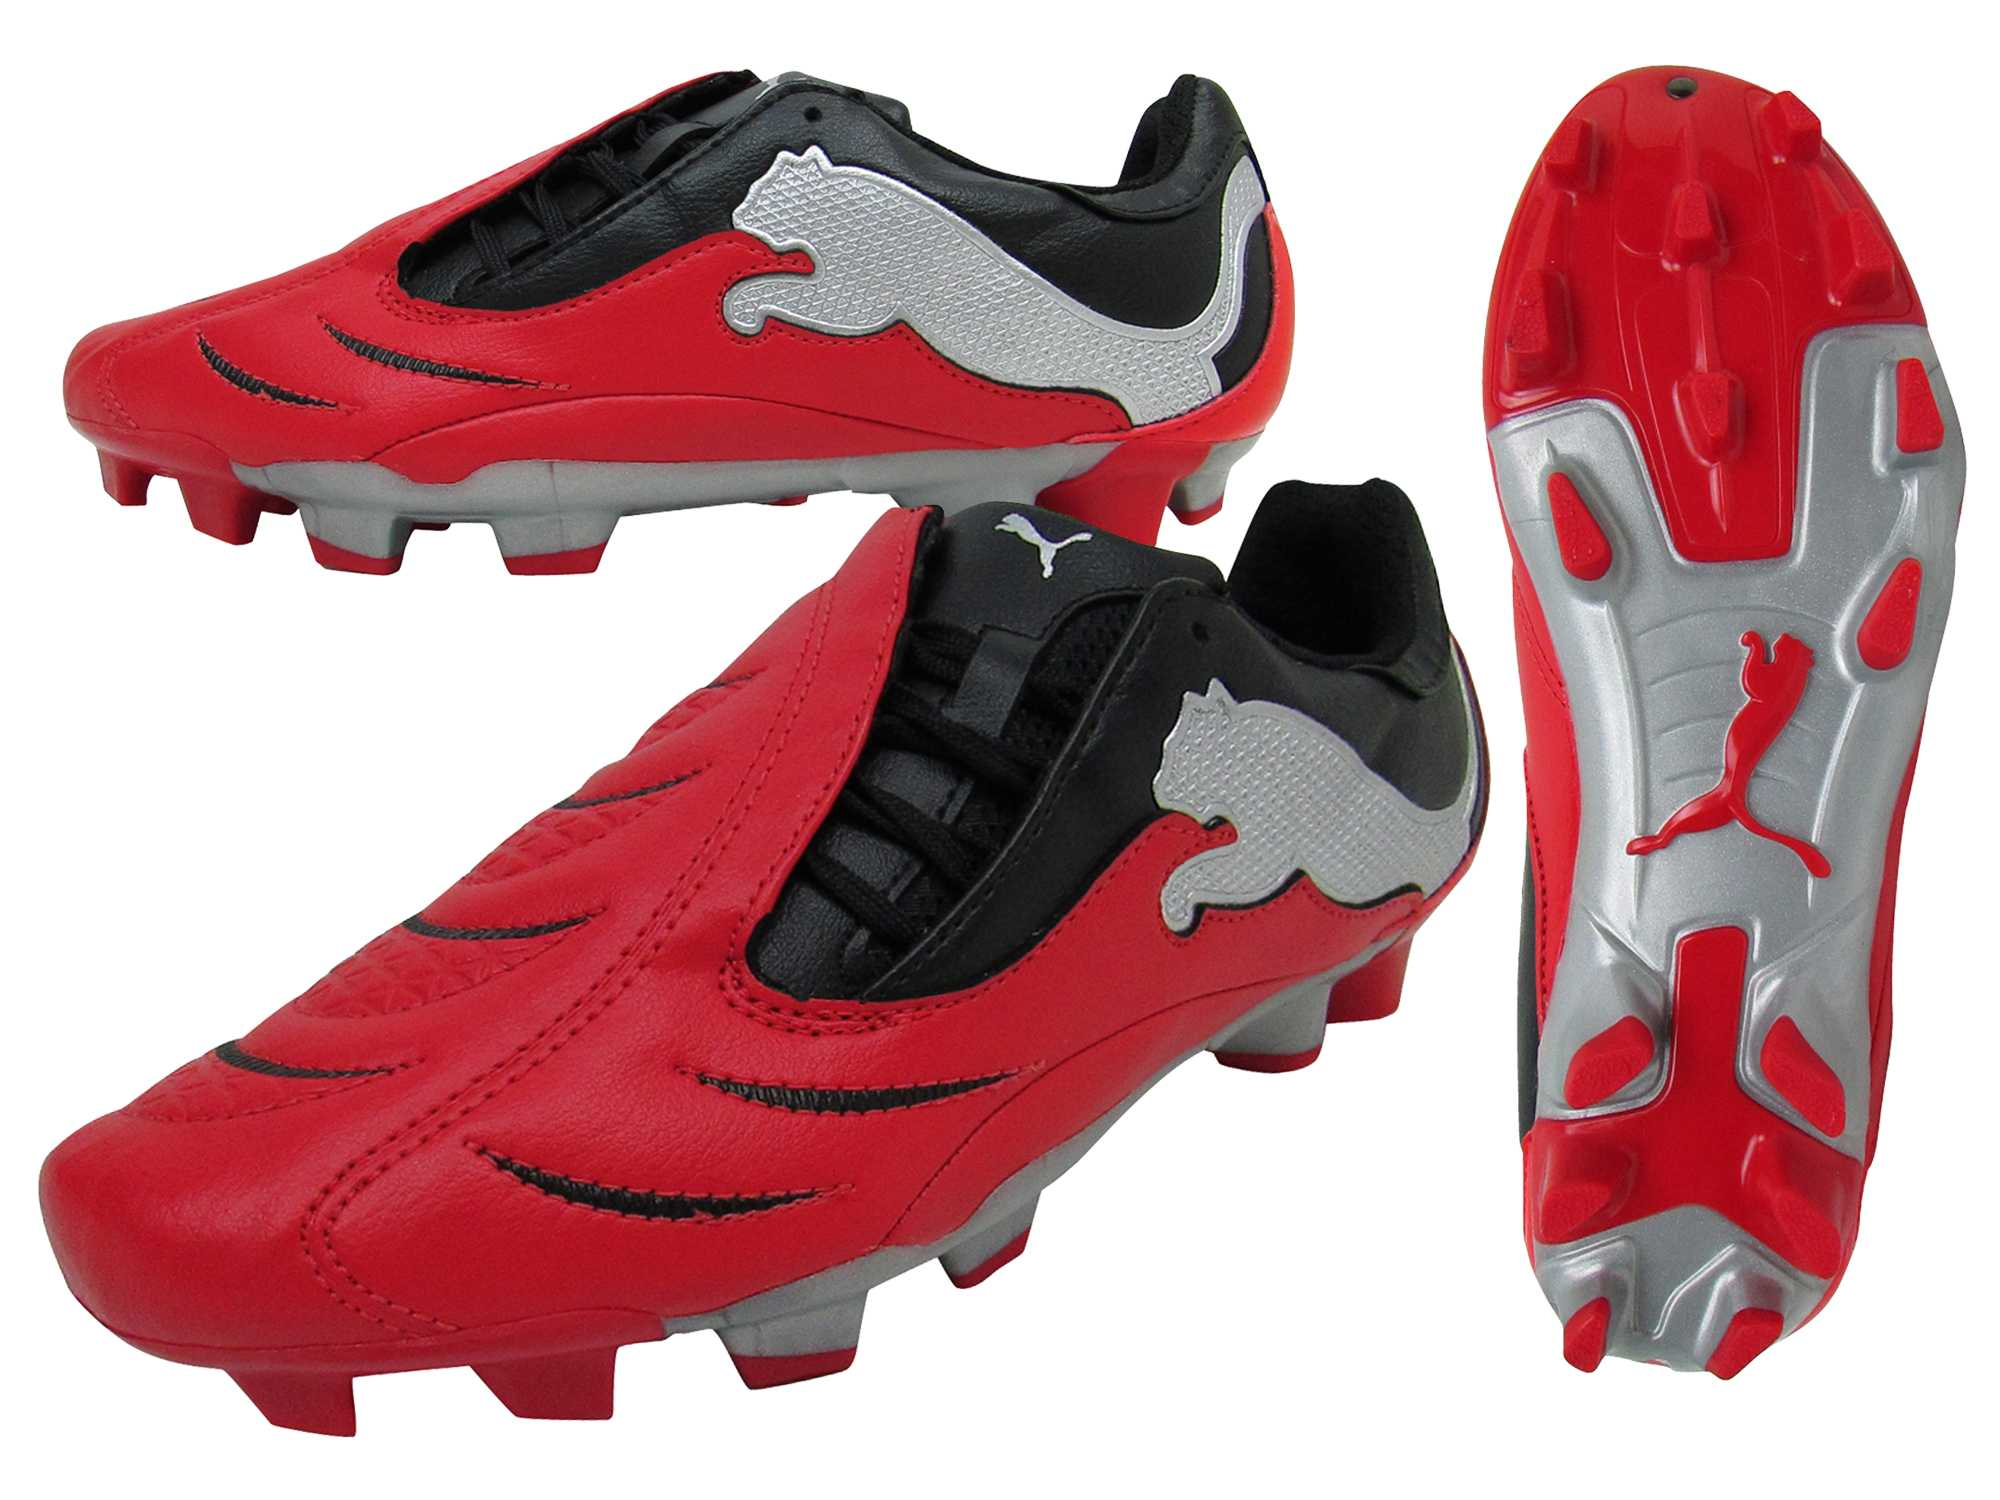 aa3fe53184de Mens Puma Powercat 3.10 FG Red Football Boots Soccer Firm Ground Boot  101906 New